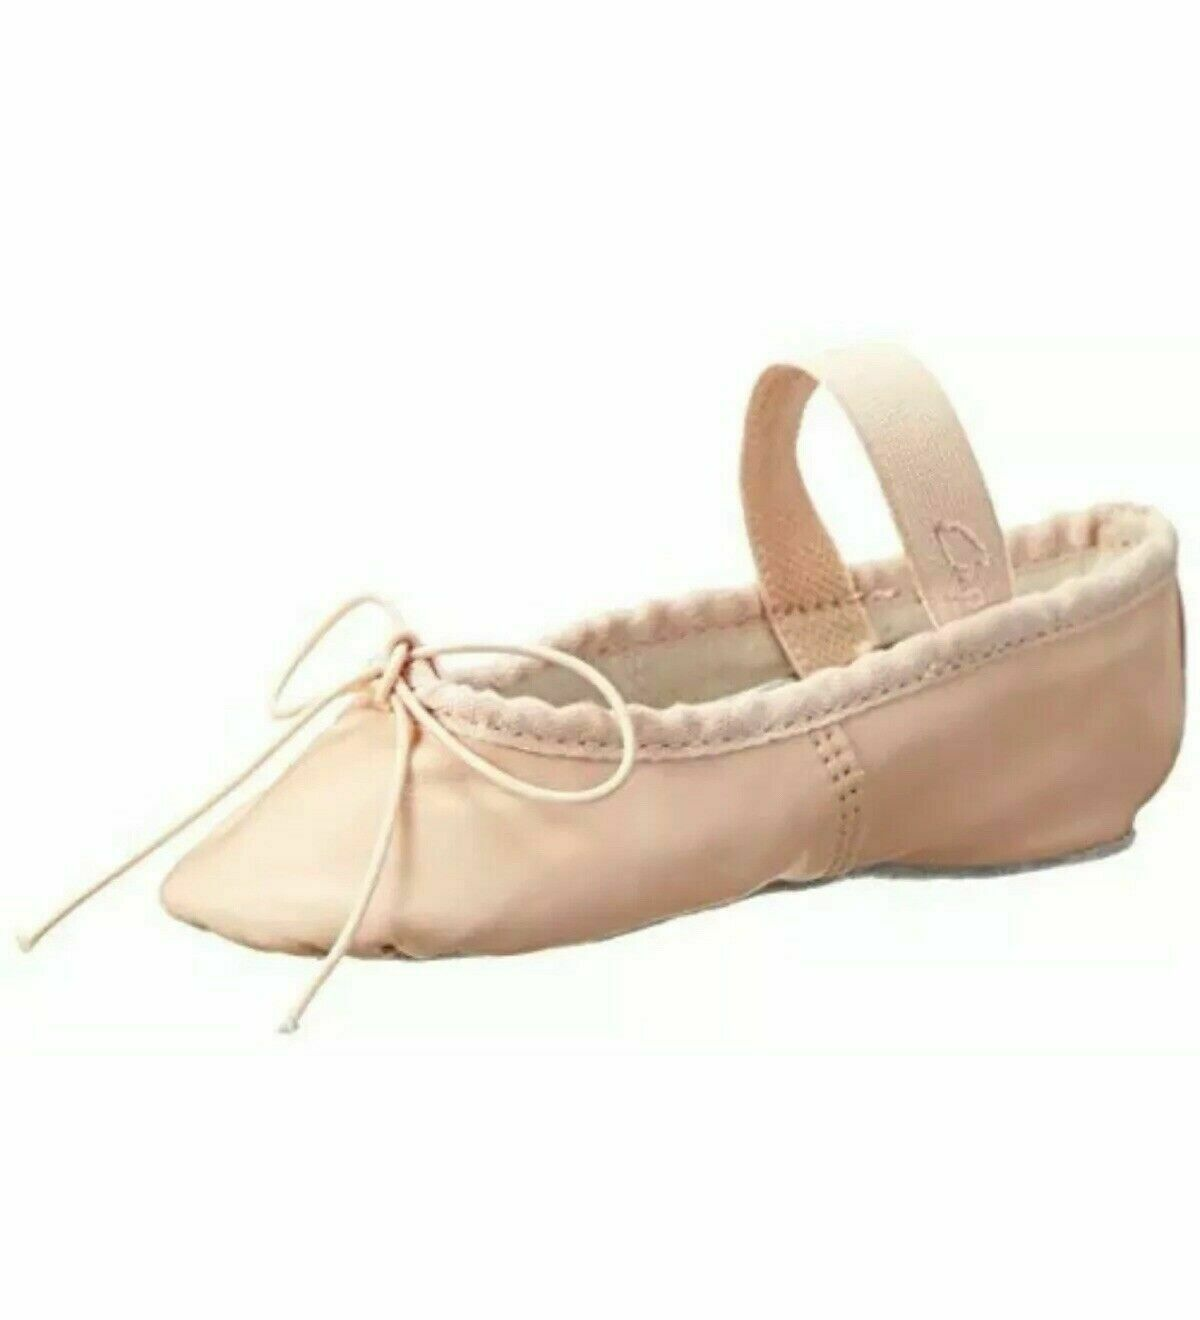 Capezio Youth Teknik 200C NPK Pink Full Sole Ballet Shoe Size 13B 13 B